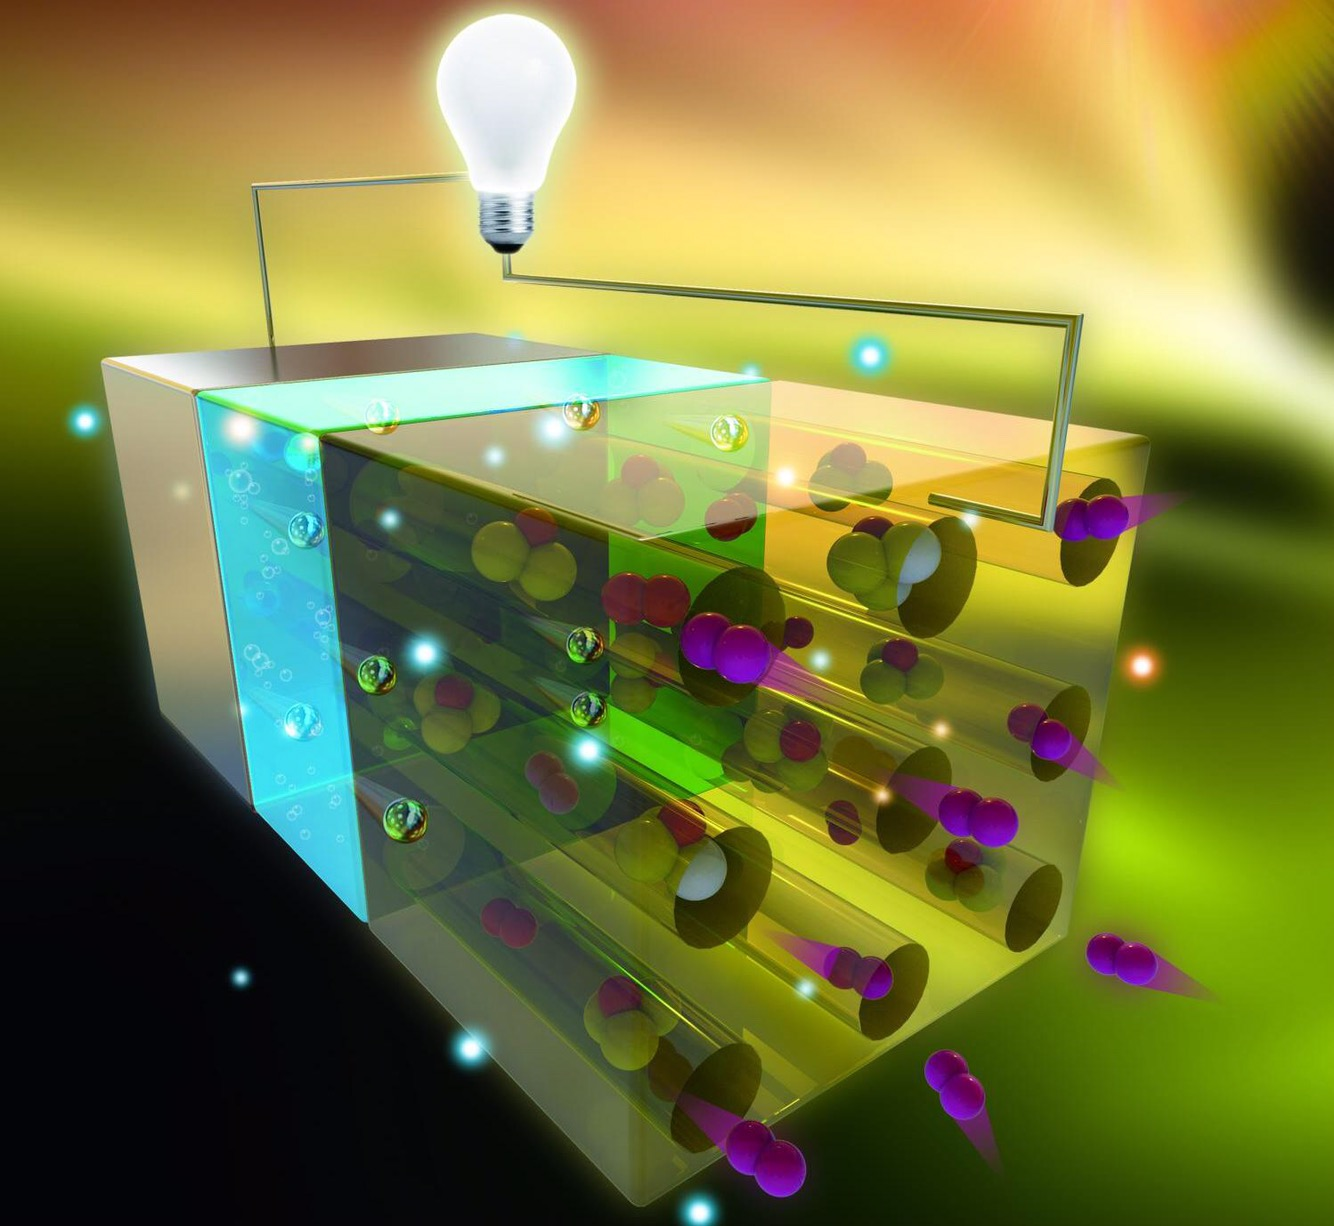 UT Austin's and Goodenough's New 'Solid Electrolyte Battery